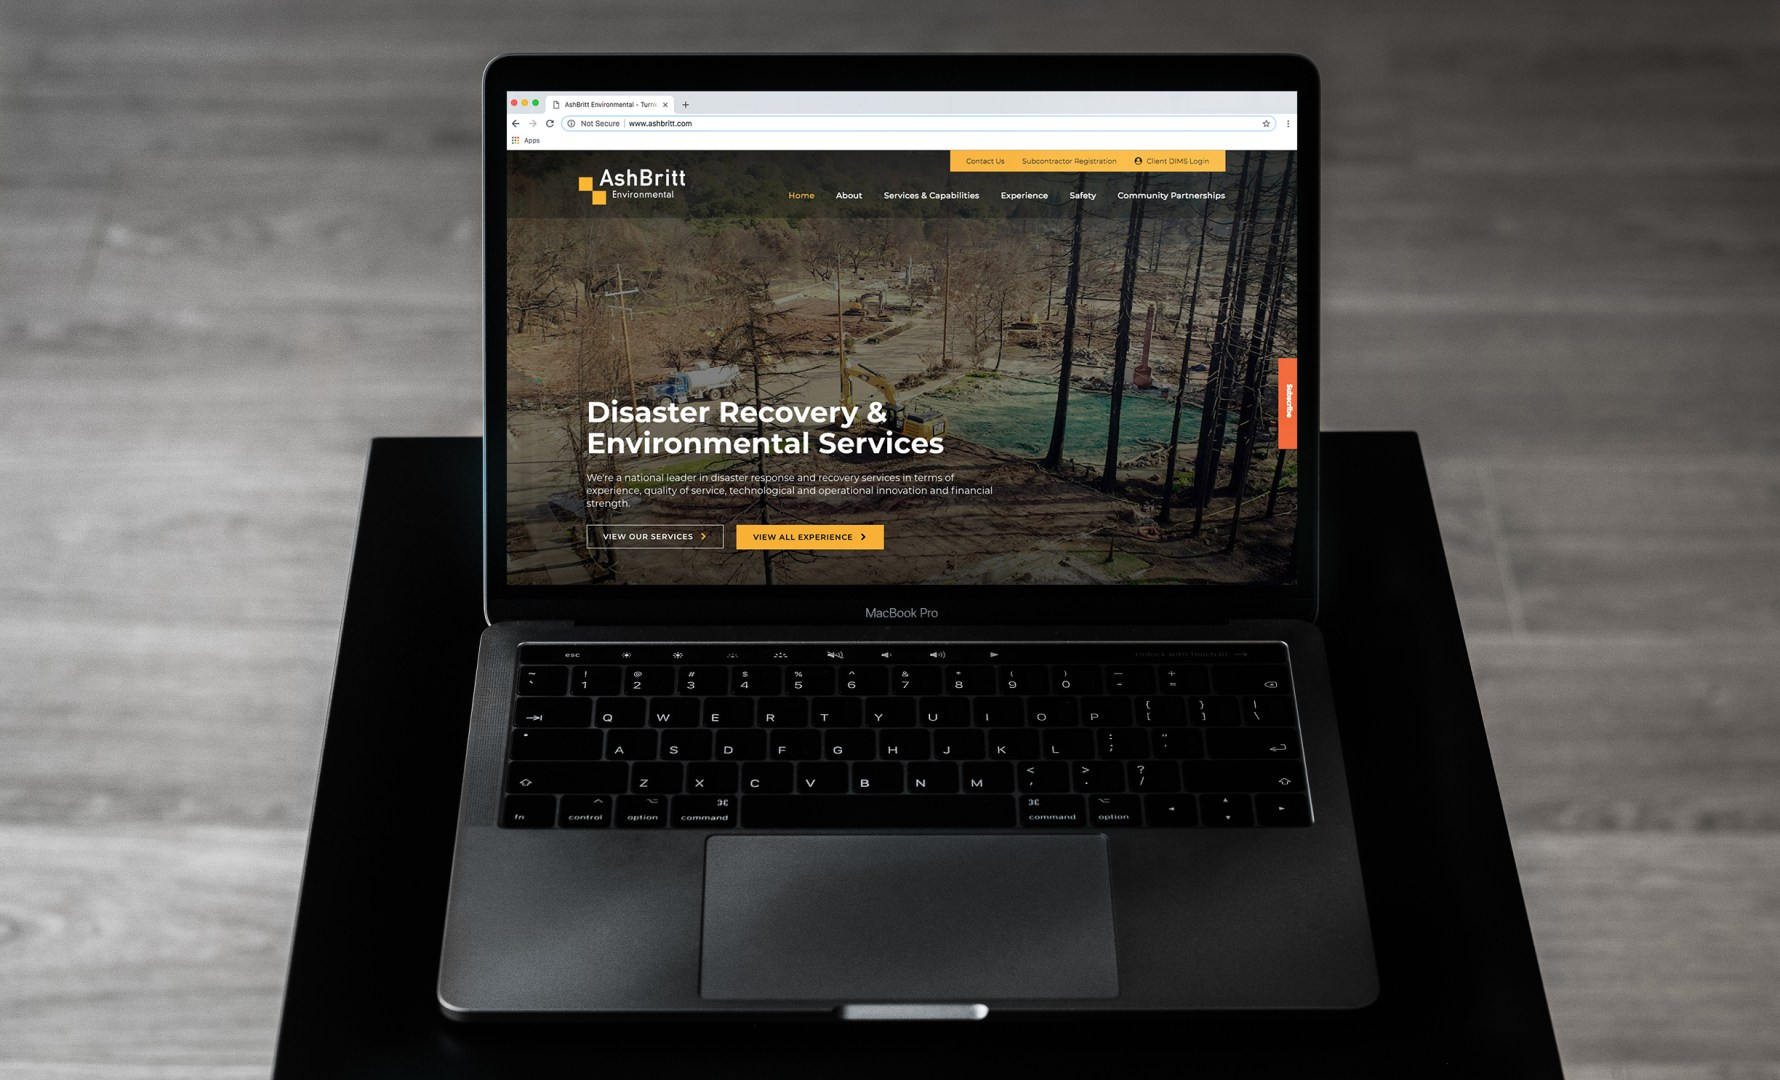 HMG Creative Launches Websites for Disaster Recovery Organizations